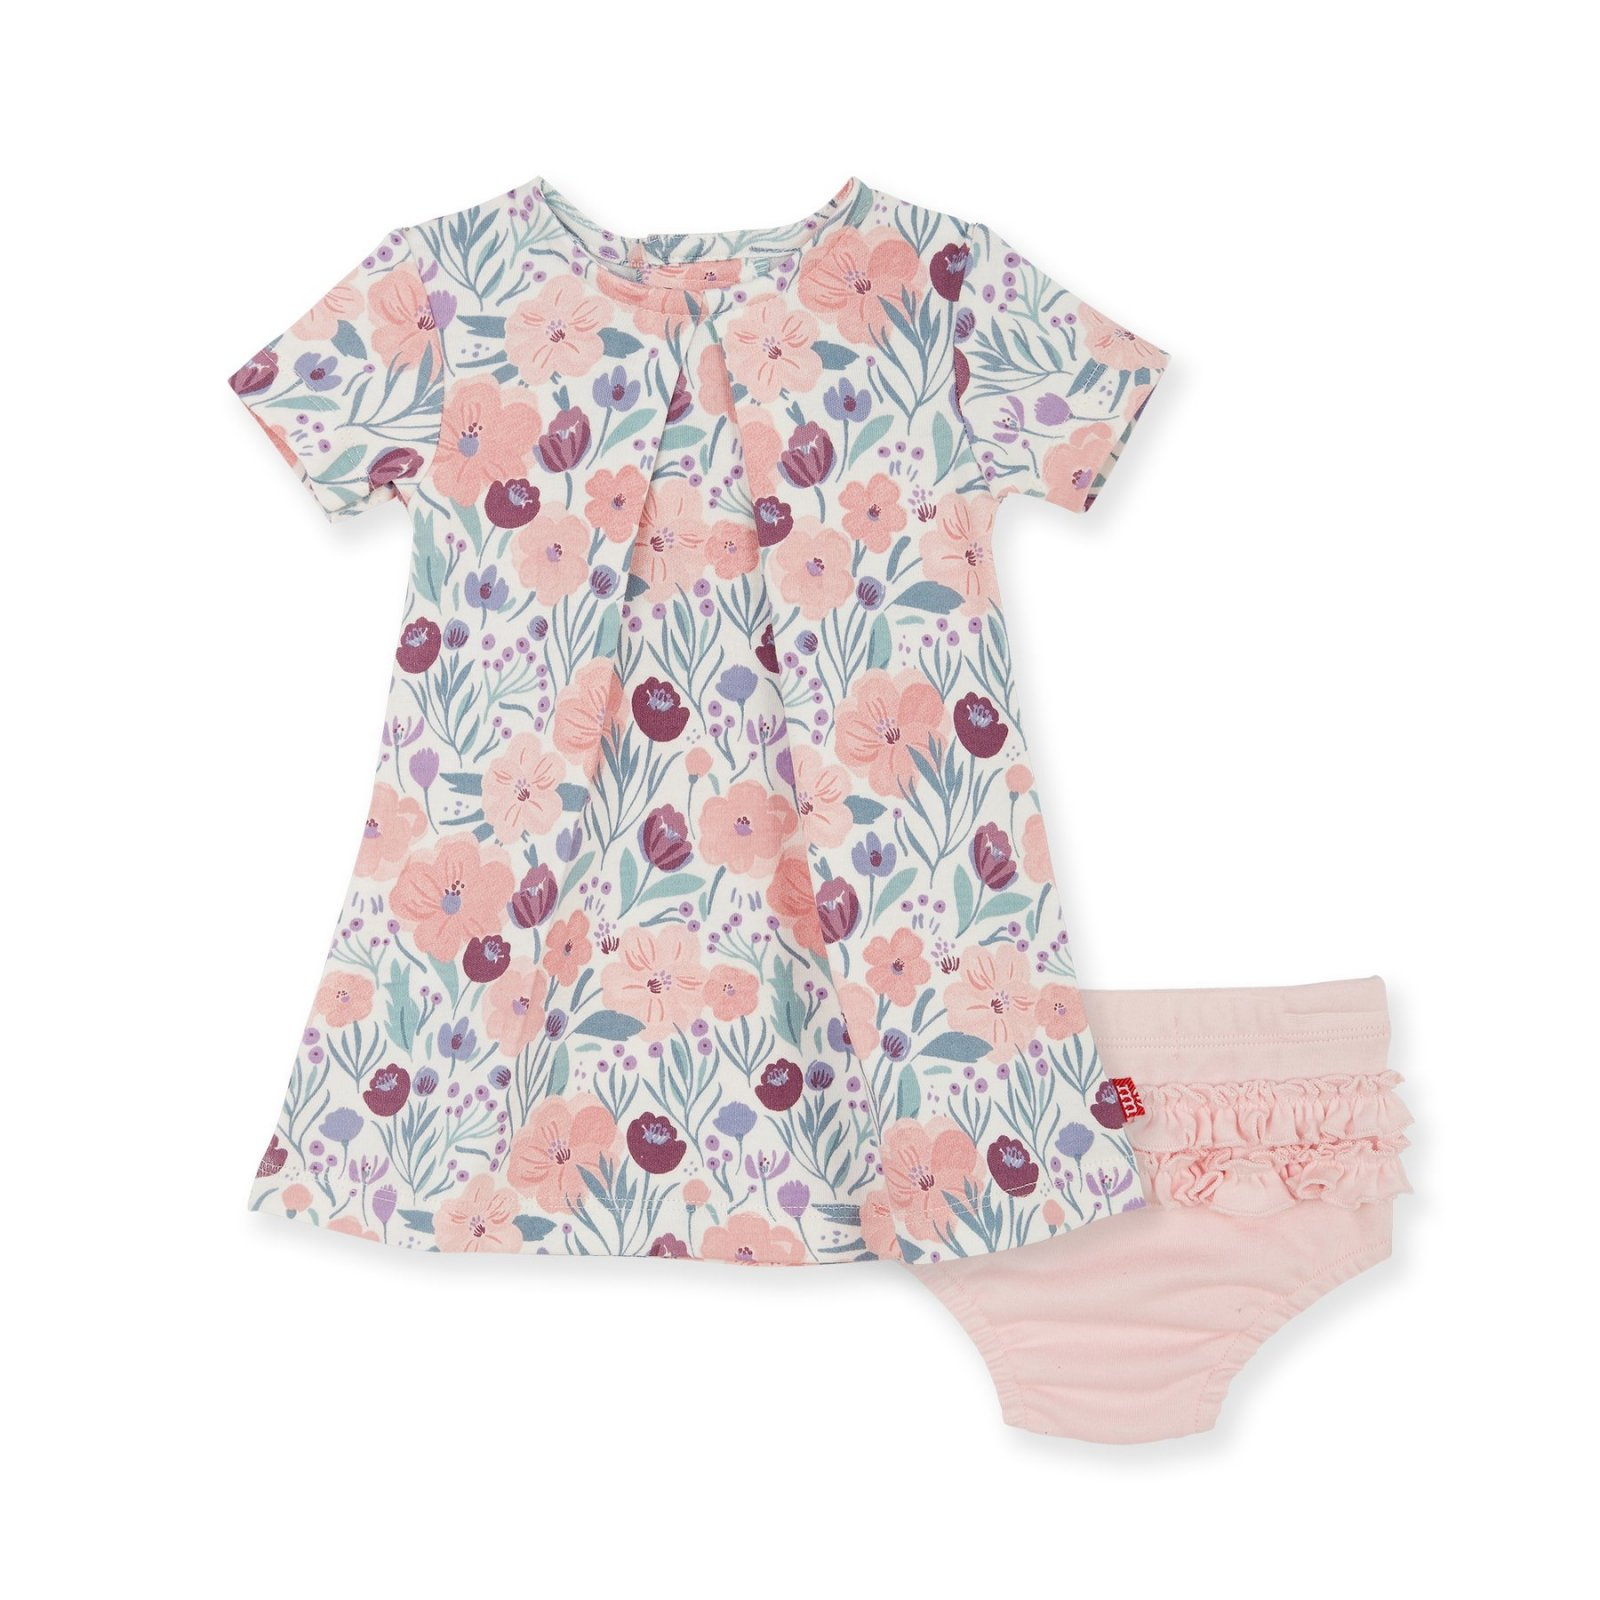 Mayfair Organic Cotton Dress Set